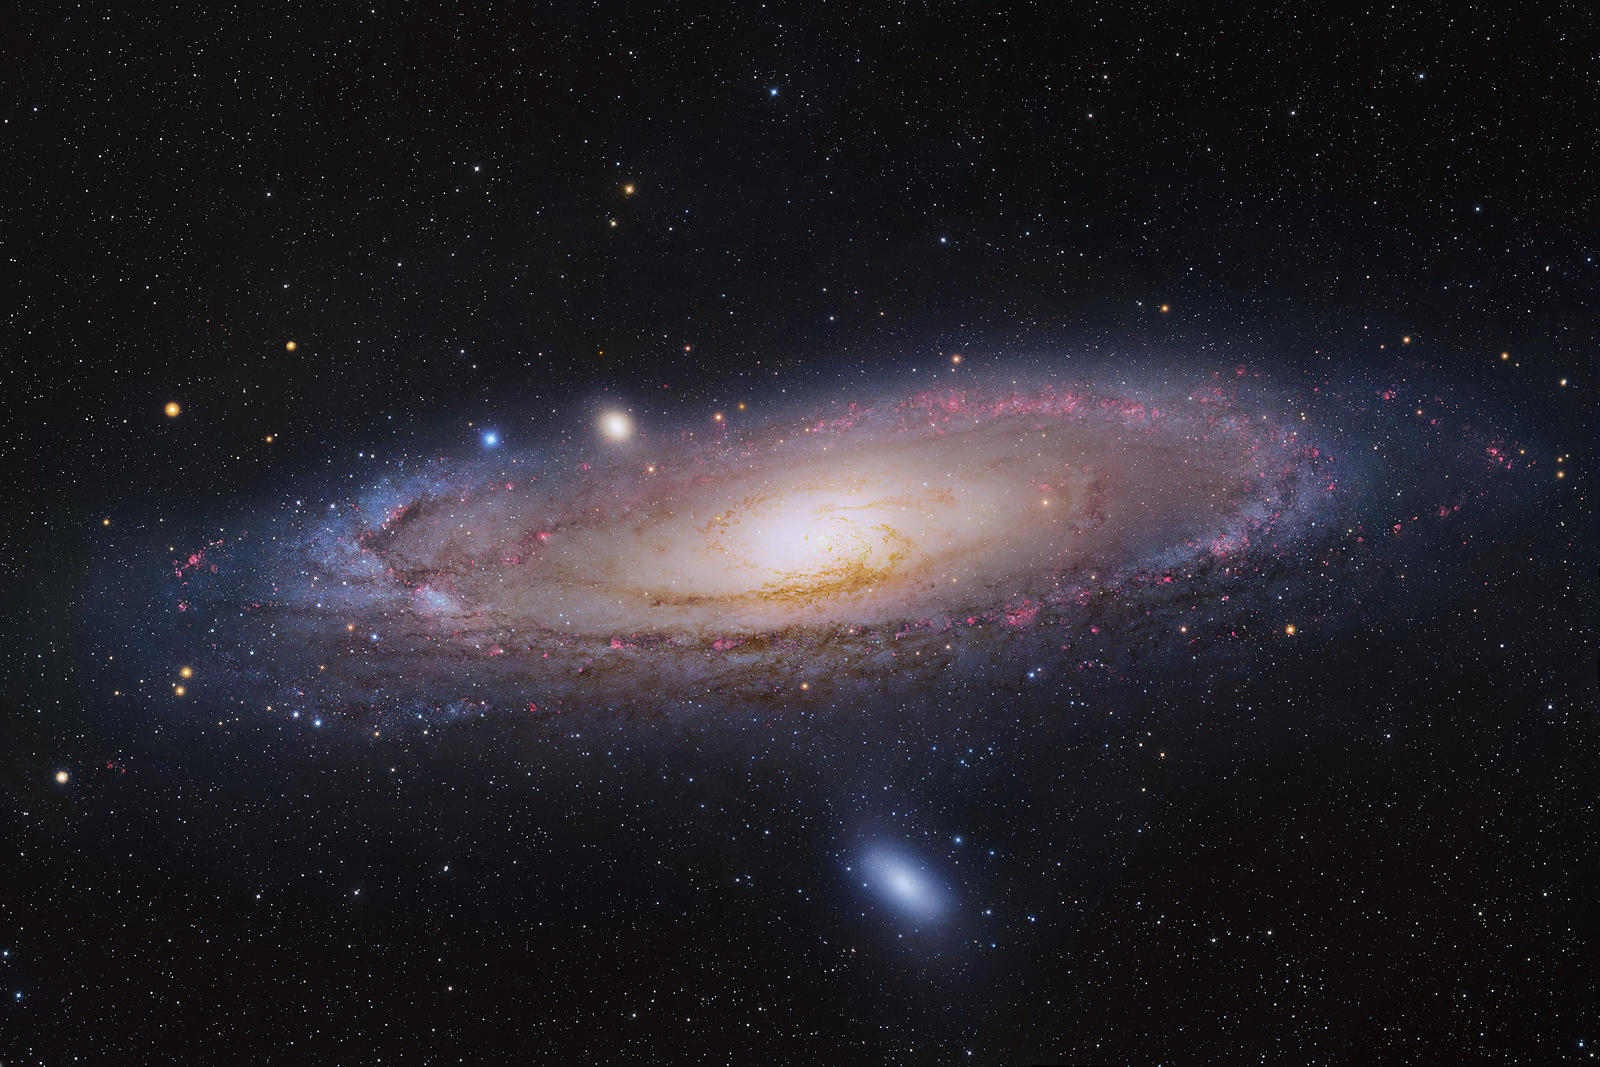 Galaxie : M31, The Andromeda Galaxy